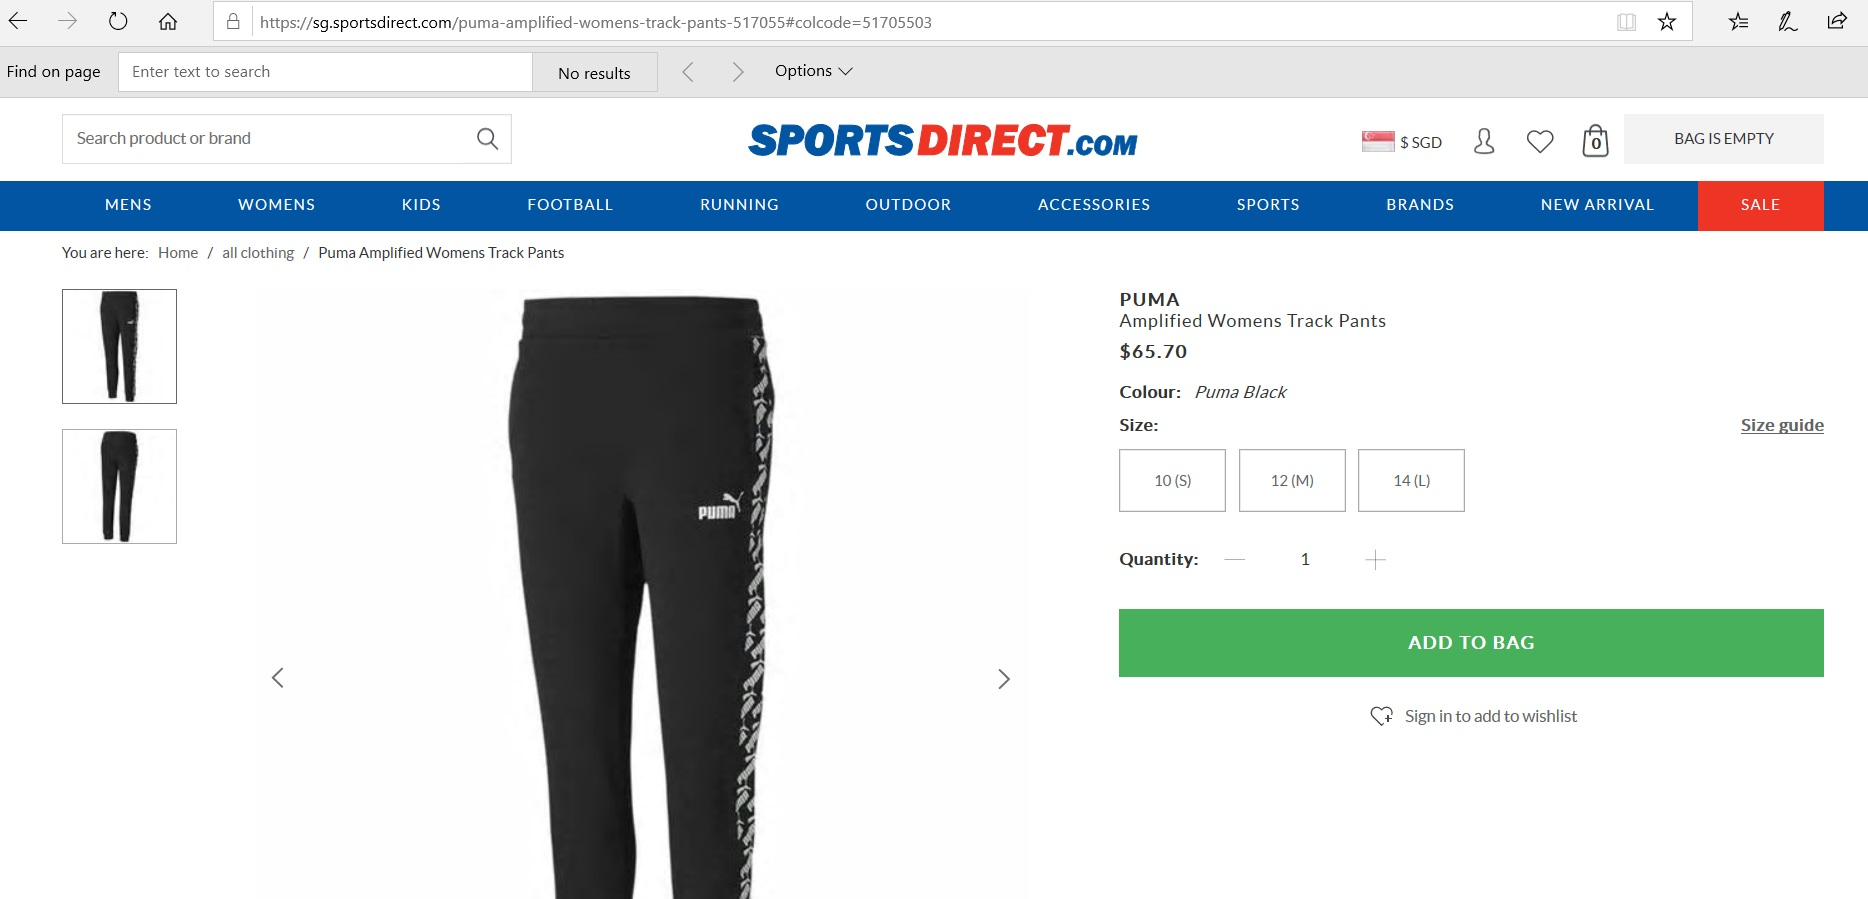 Product information on a women s track pants.